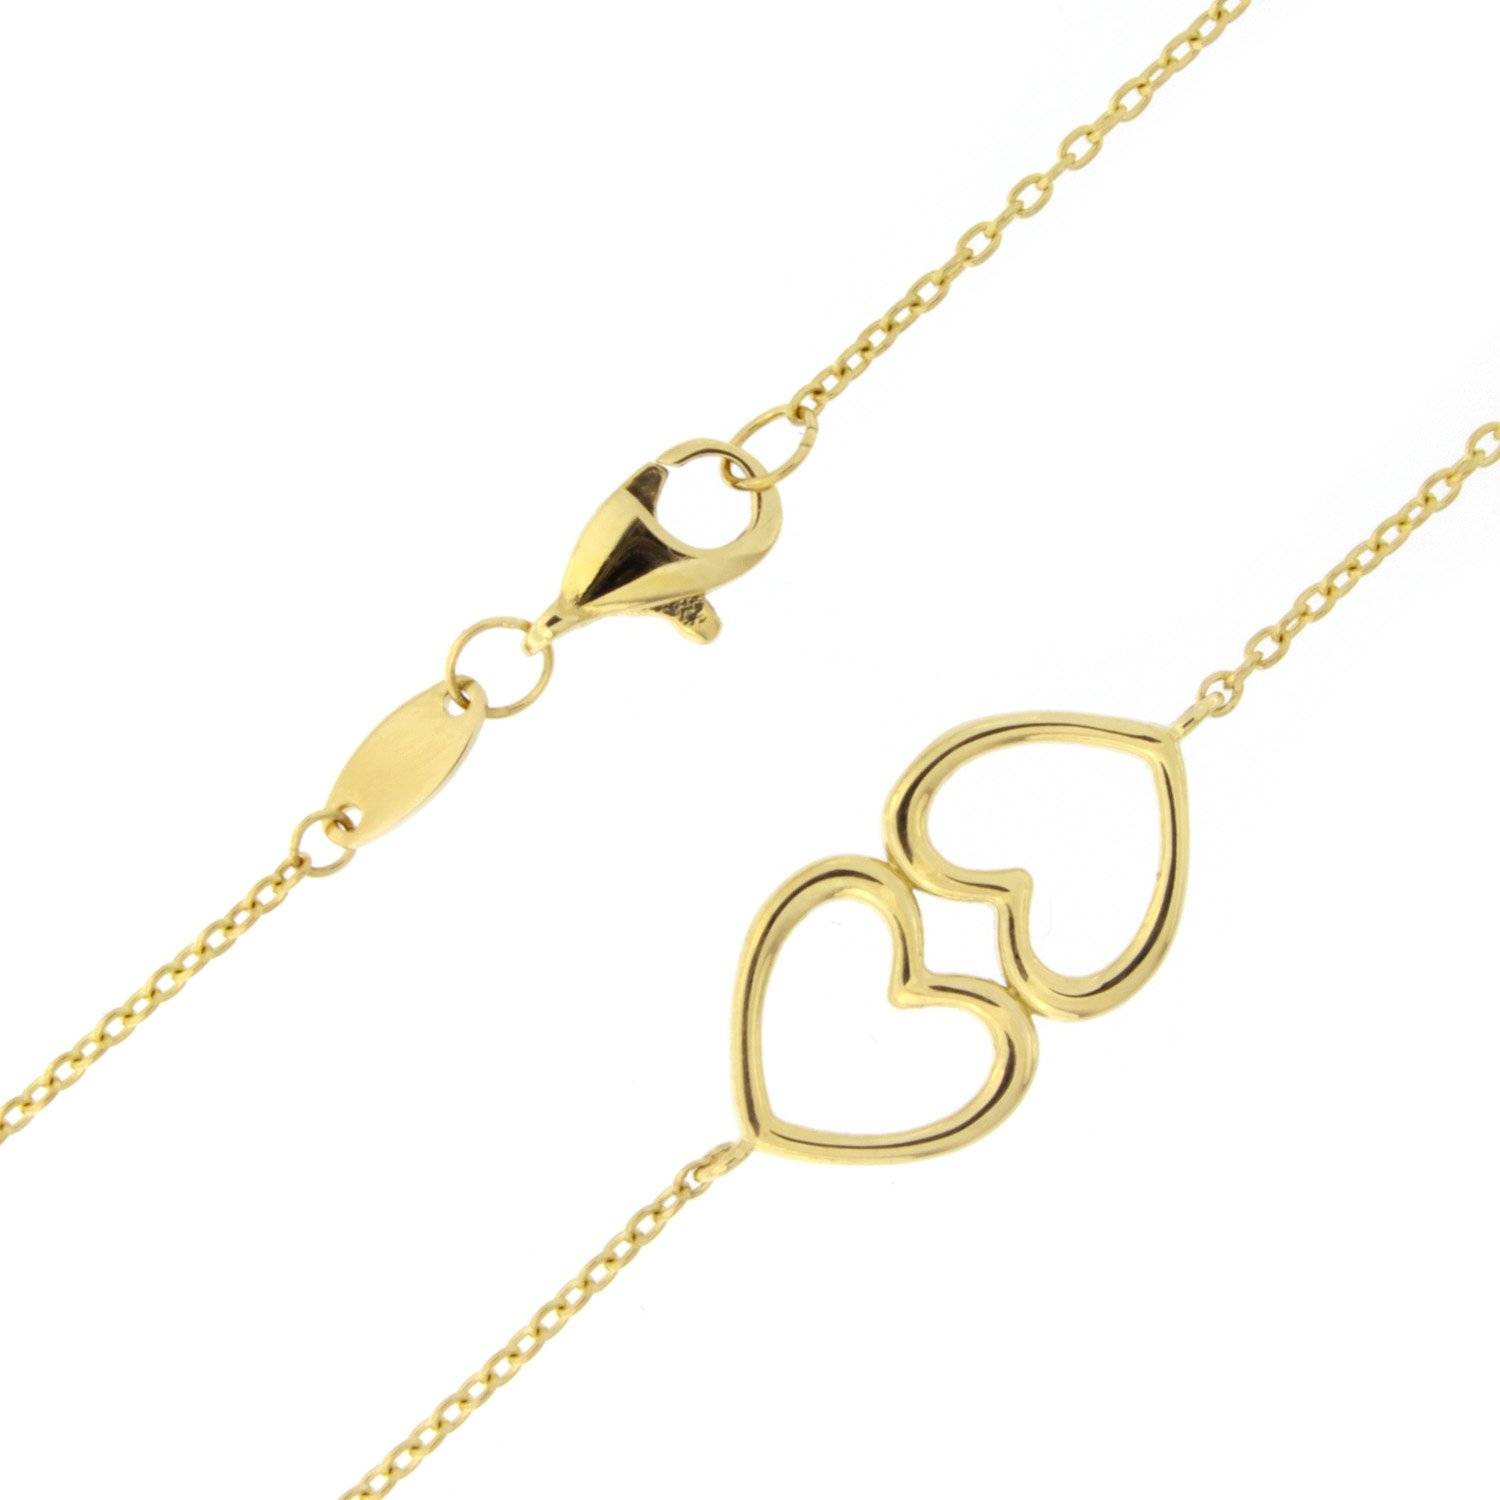 Beauniq 14k Yellow Gold Double Heart Adjustable Anklet - ...